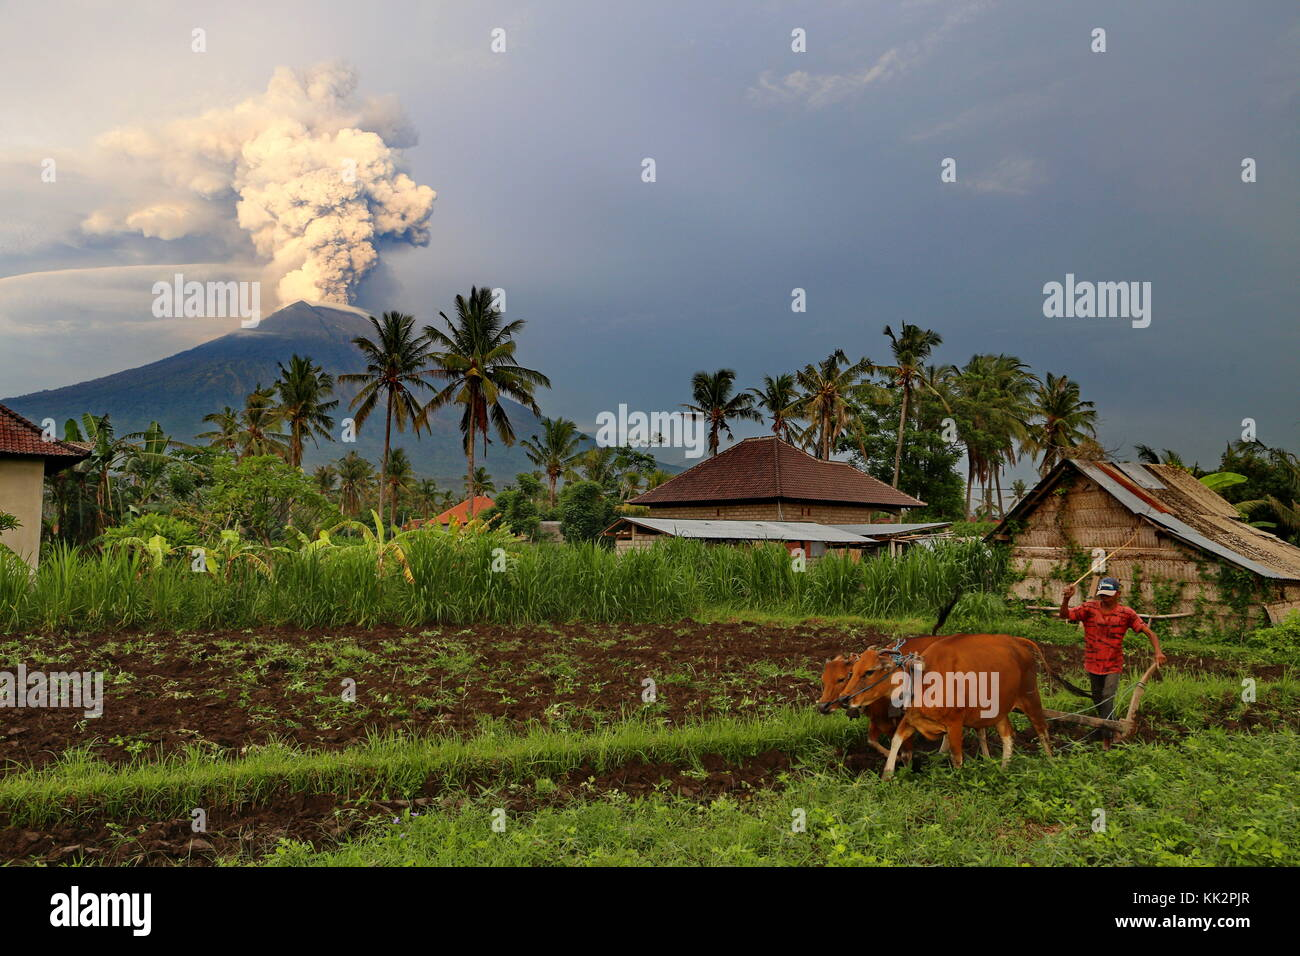 Bali, Indonesia. 28th Nov, 2017. The eruption of Mt. Agung disrupts flights to/from Bali, endangers local population. - Stock Image